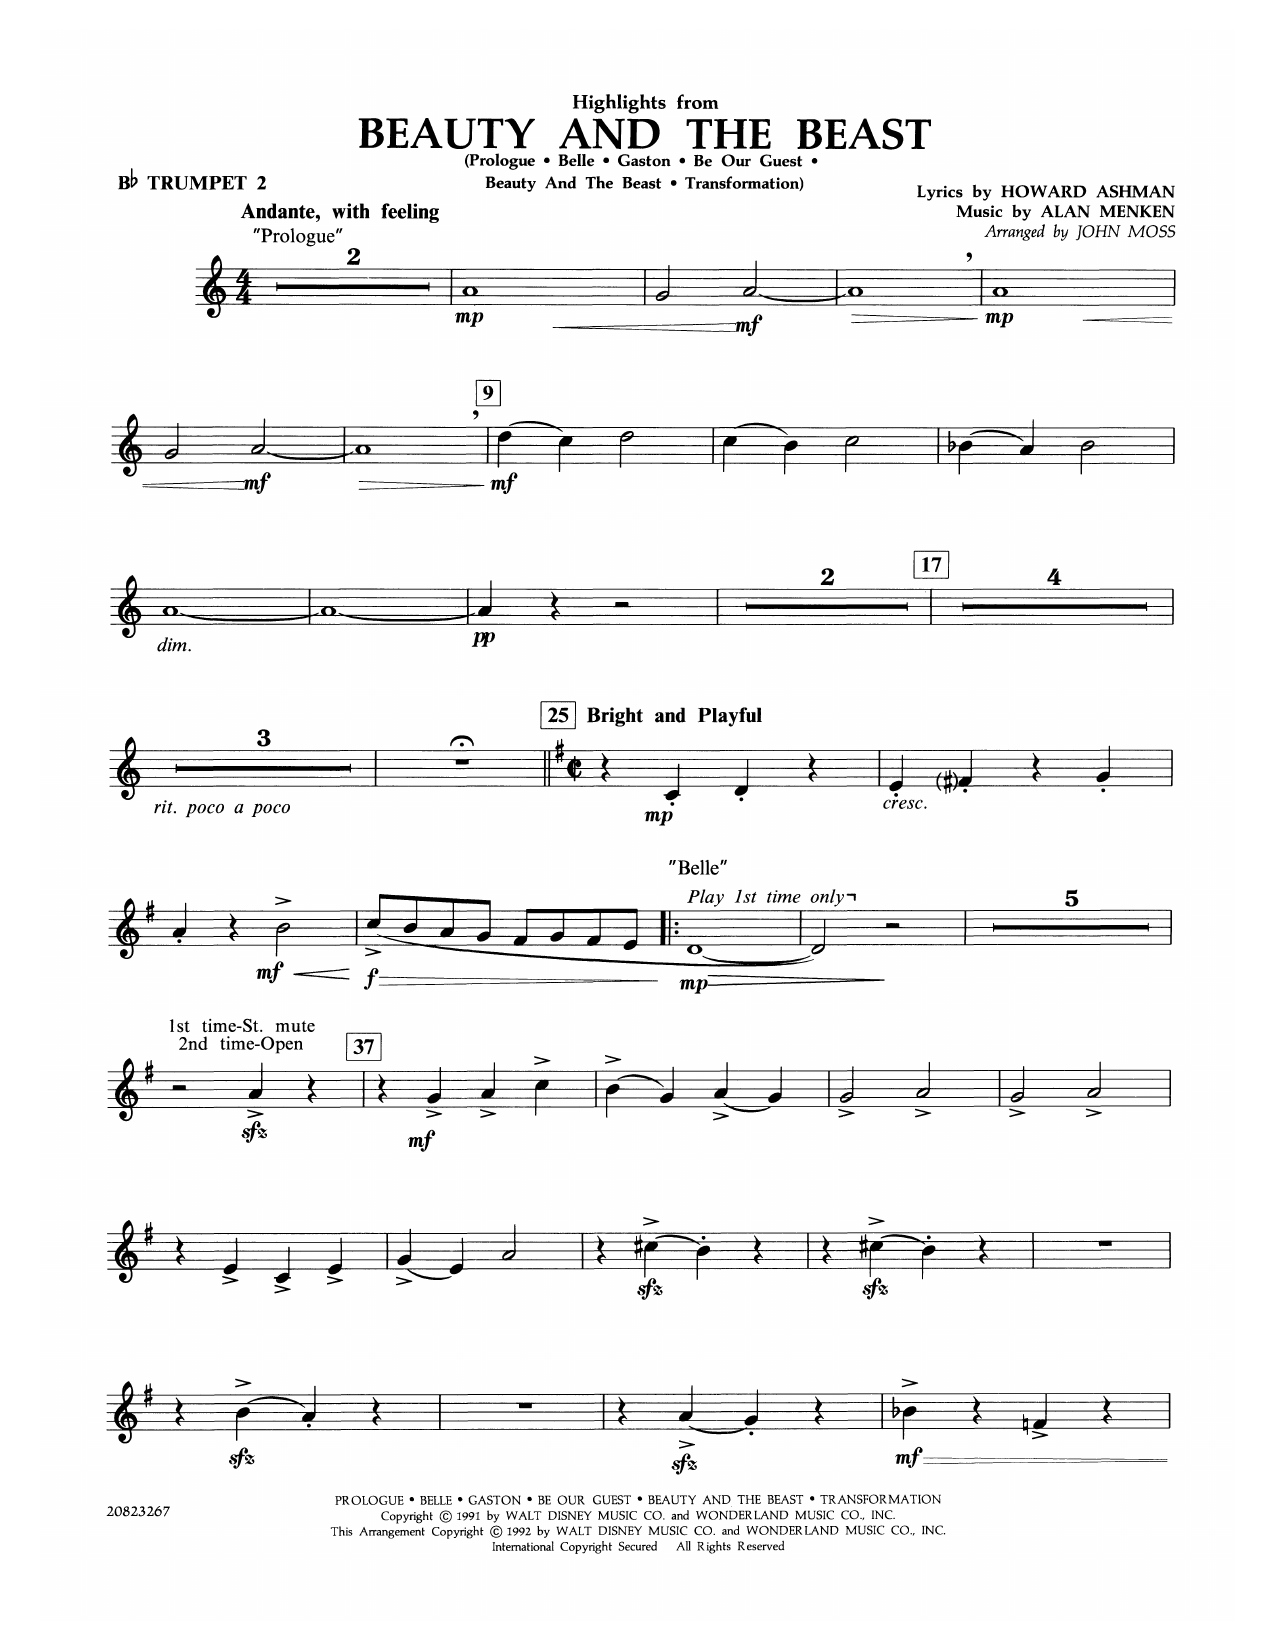 Highlights from Beauty and the Beast - Bb Trumpet 2 Sheet Music